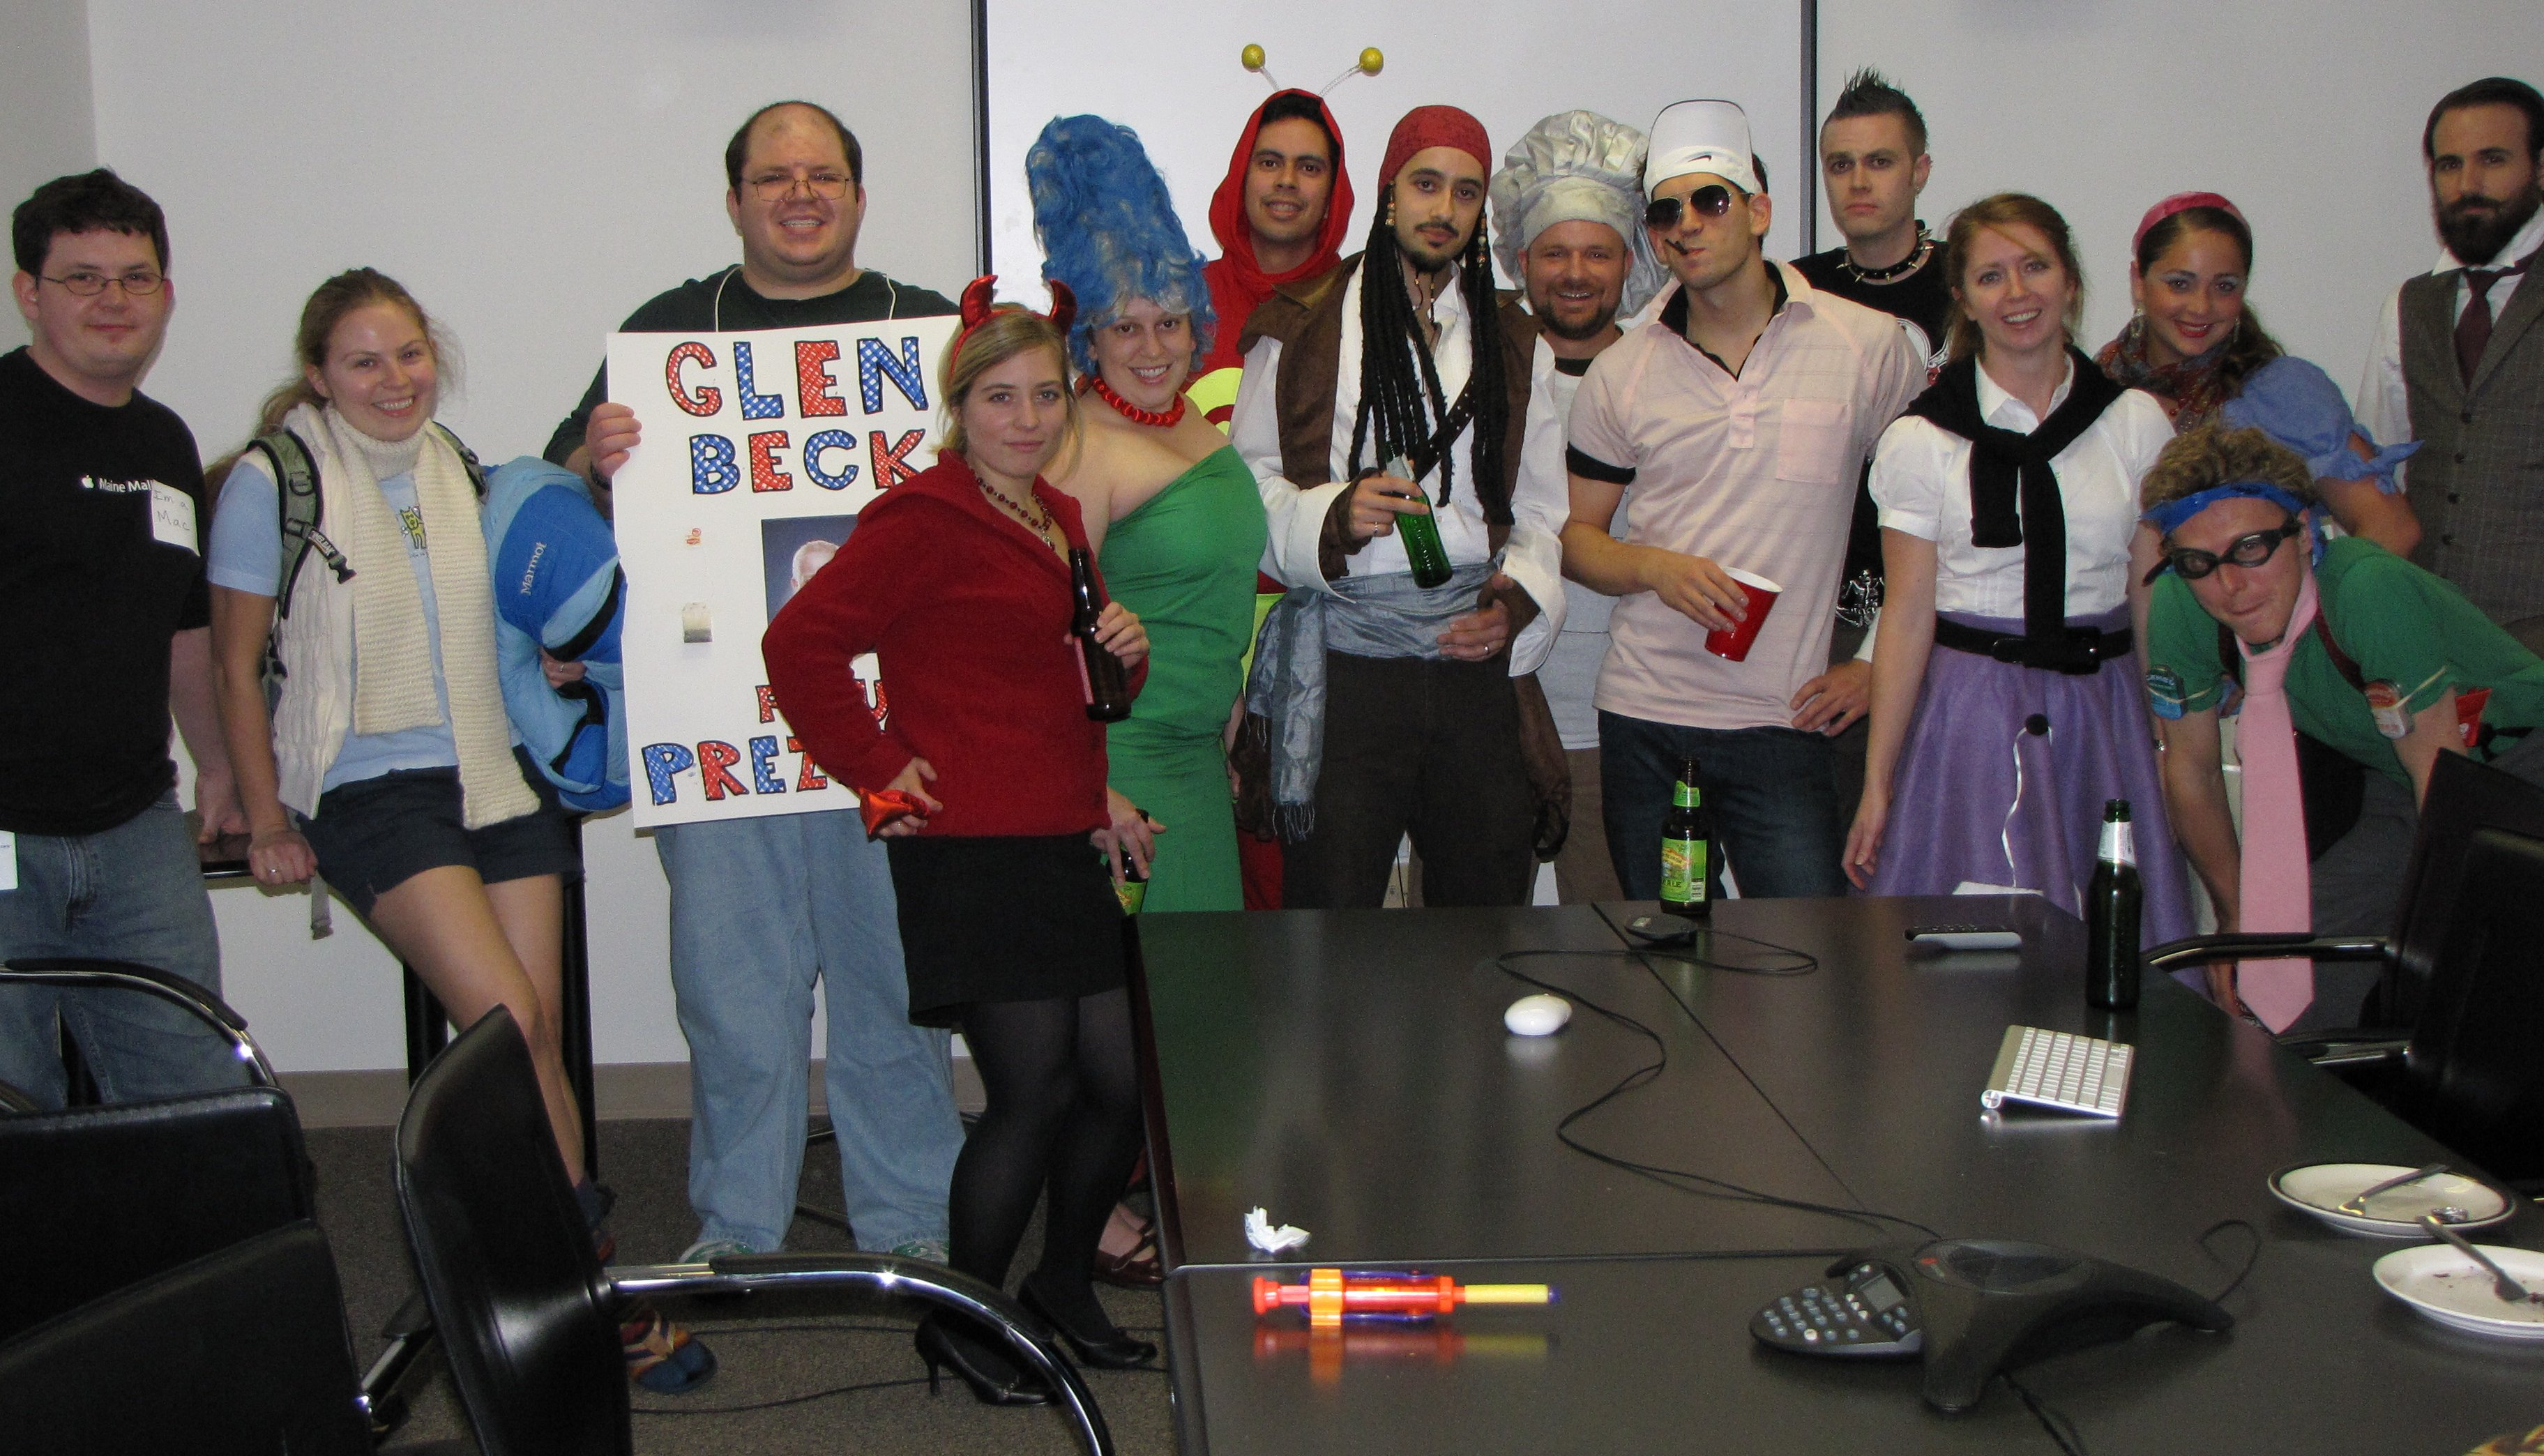 Office halloween costumes - I Ll Never Forget The Year That My Co Worker Showed Up At The Office Dressed As A Male Organ While Some Of Us Thought It Was A Riot Others Were Offended